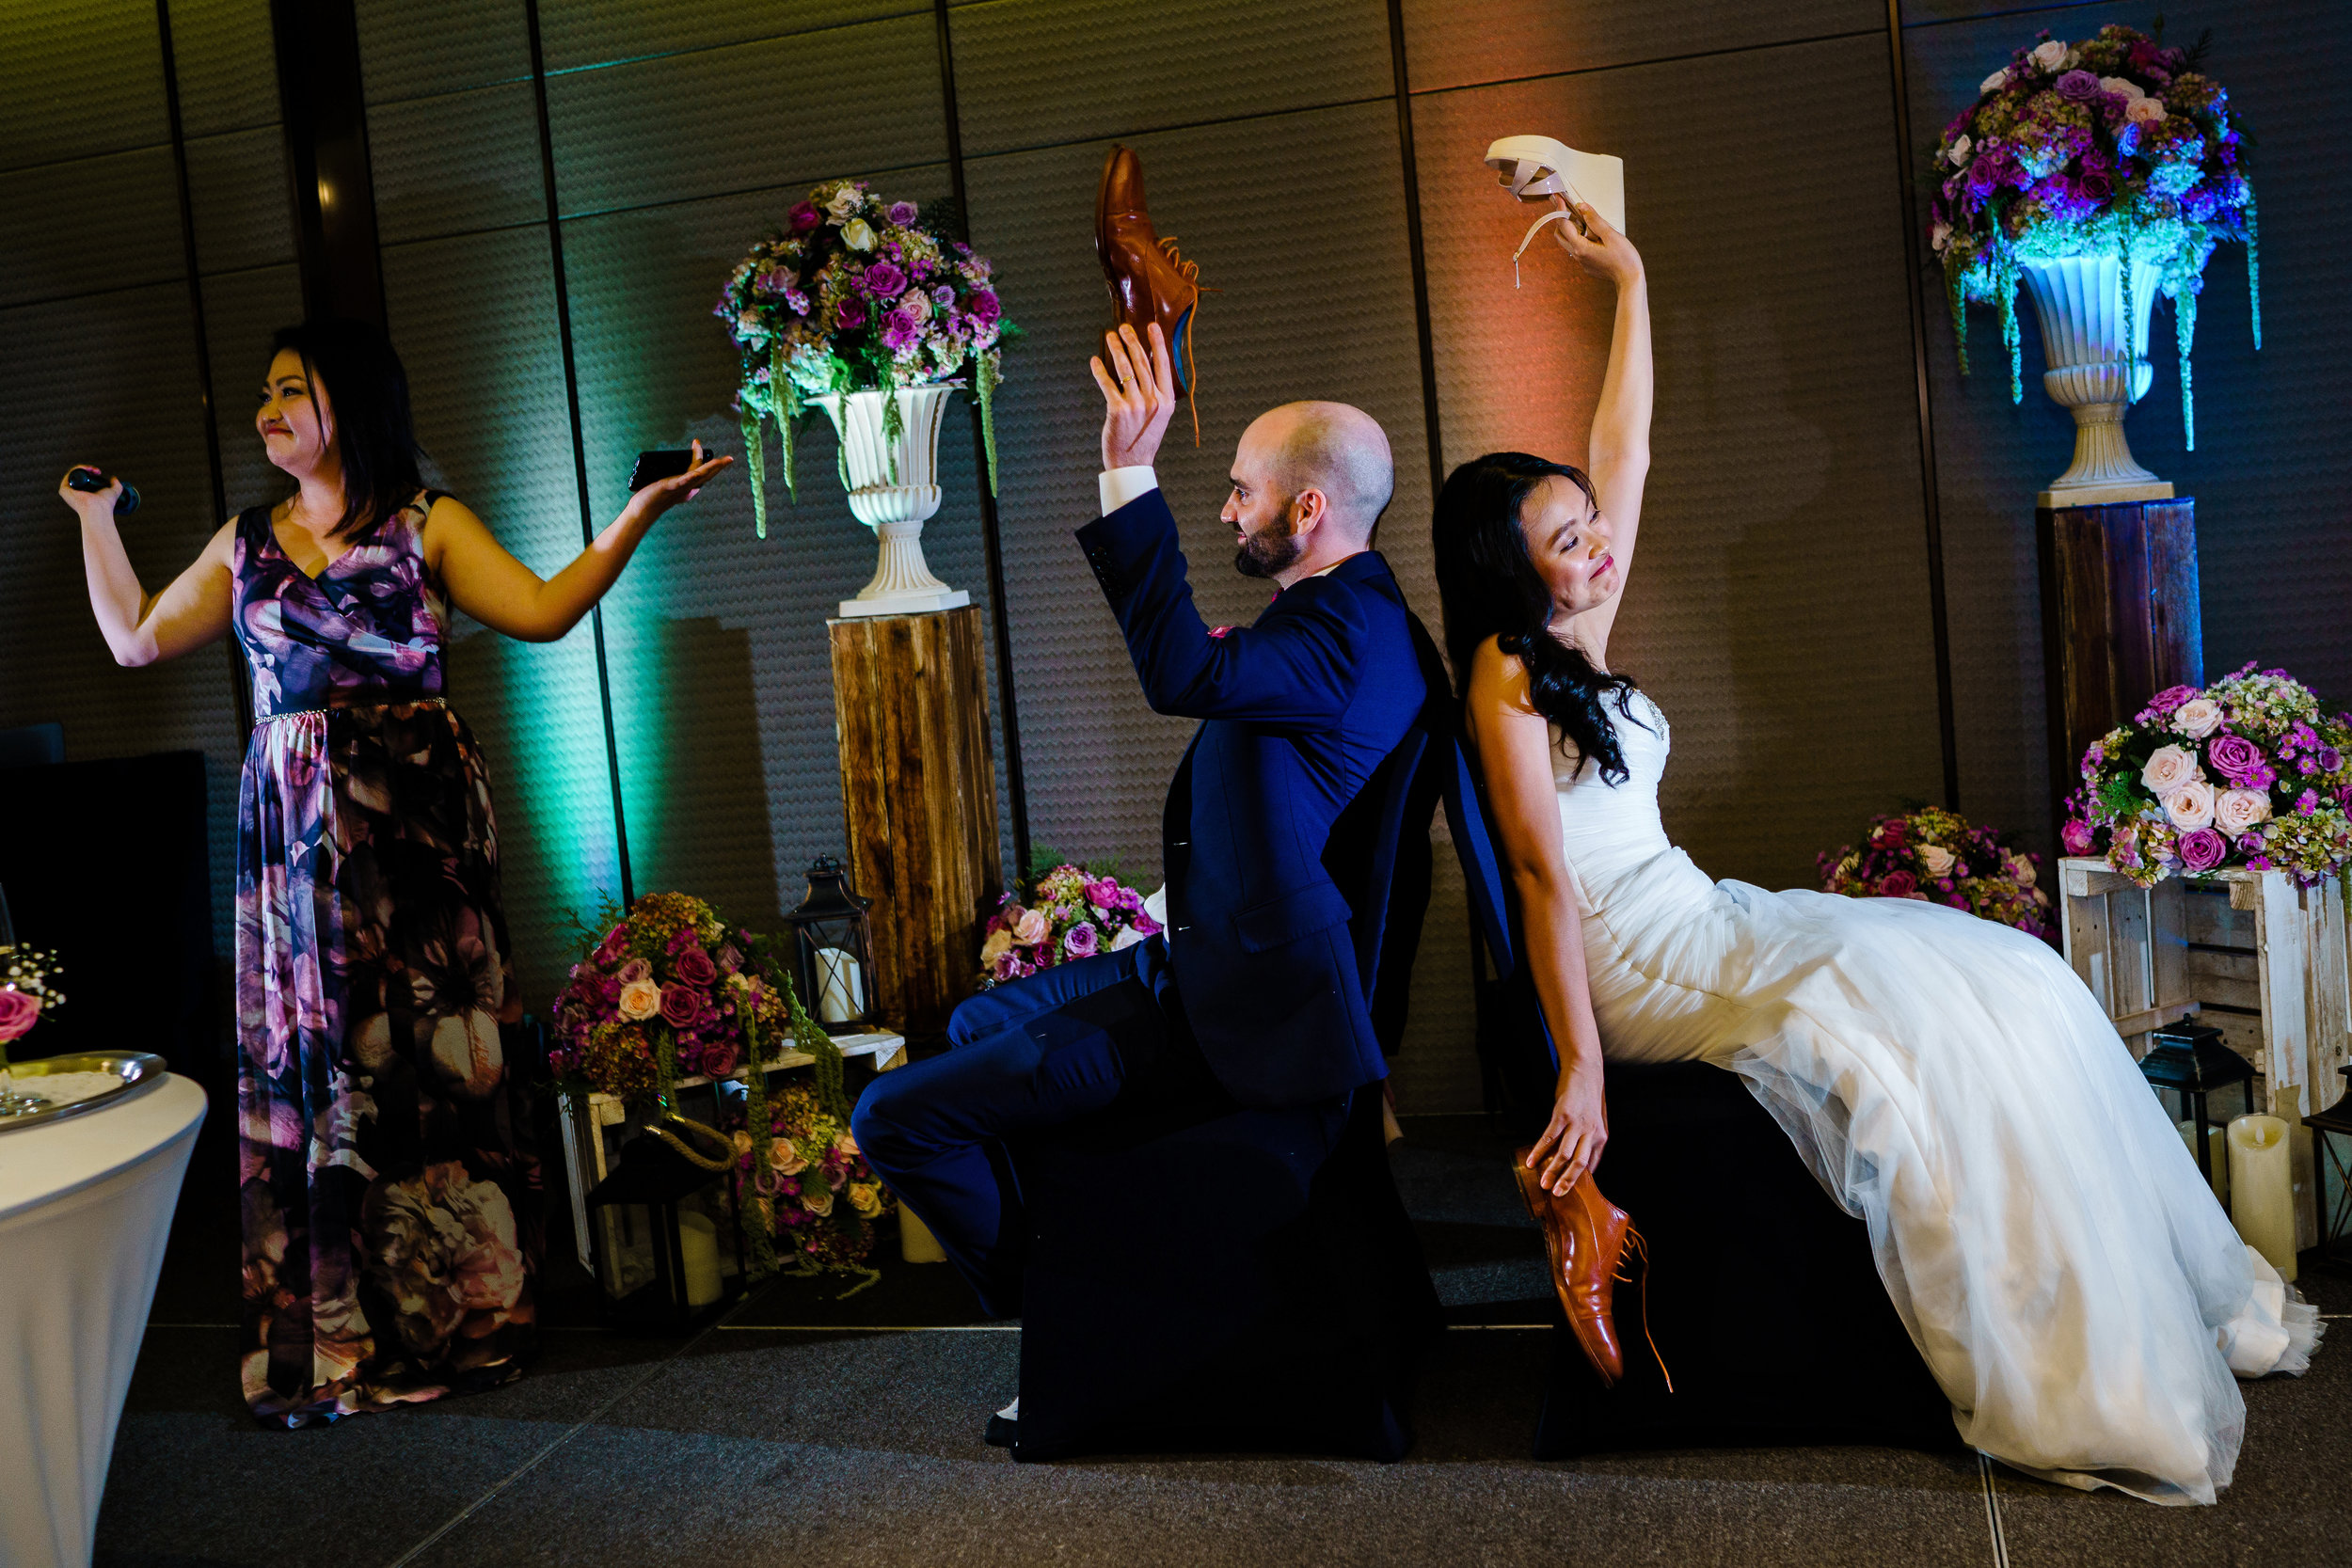 Jon-Hieu-wedding-legend-hotel-saigon-072.JPG